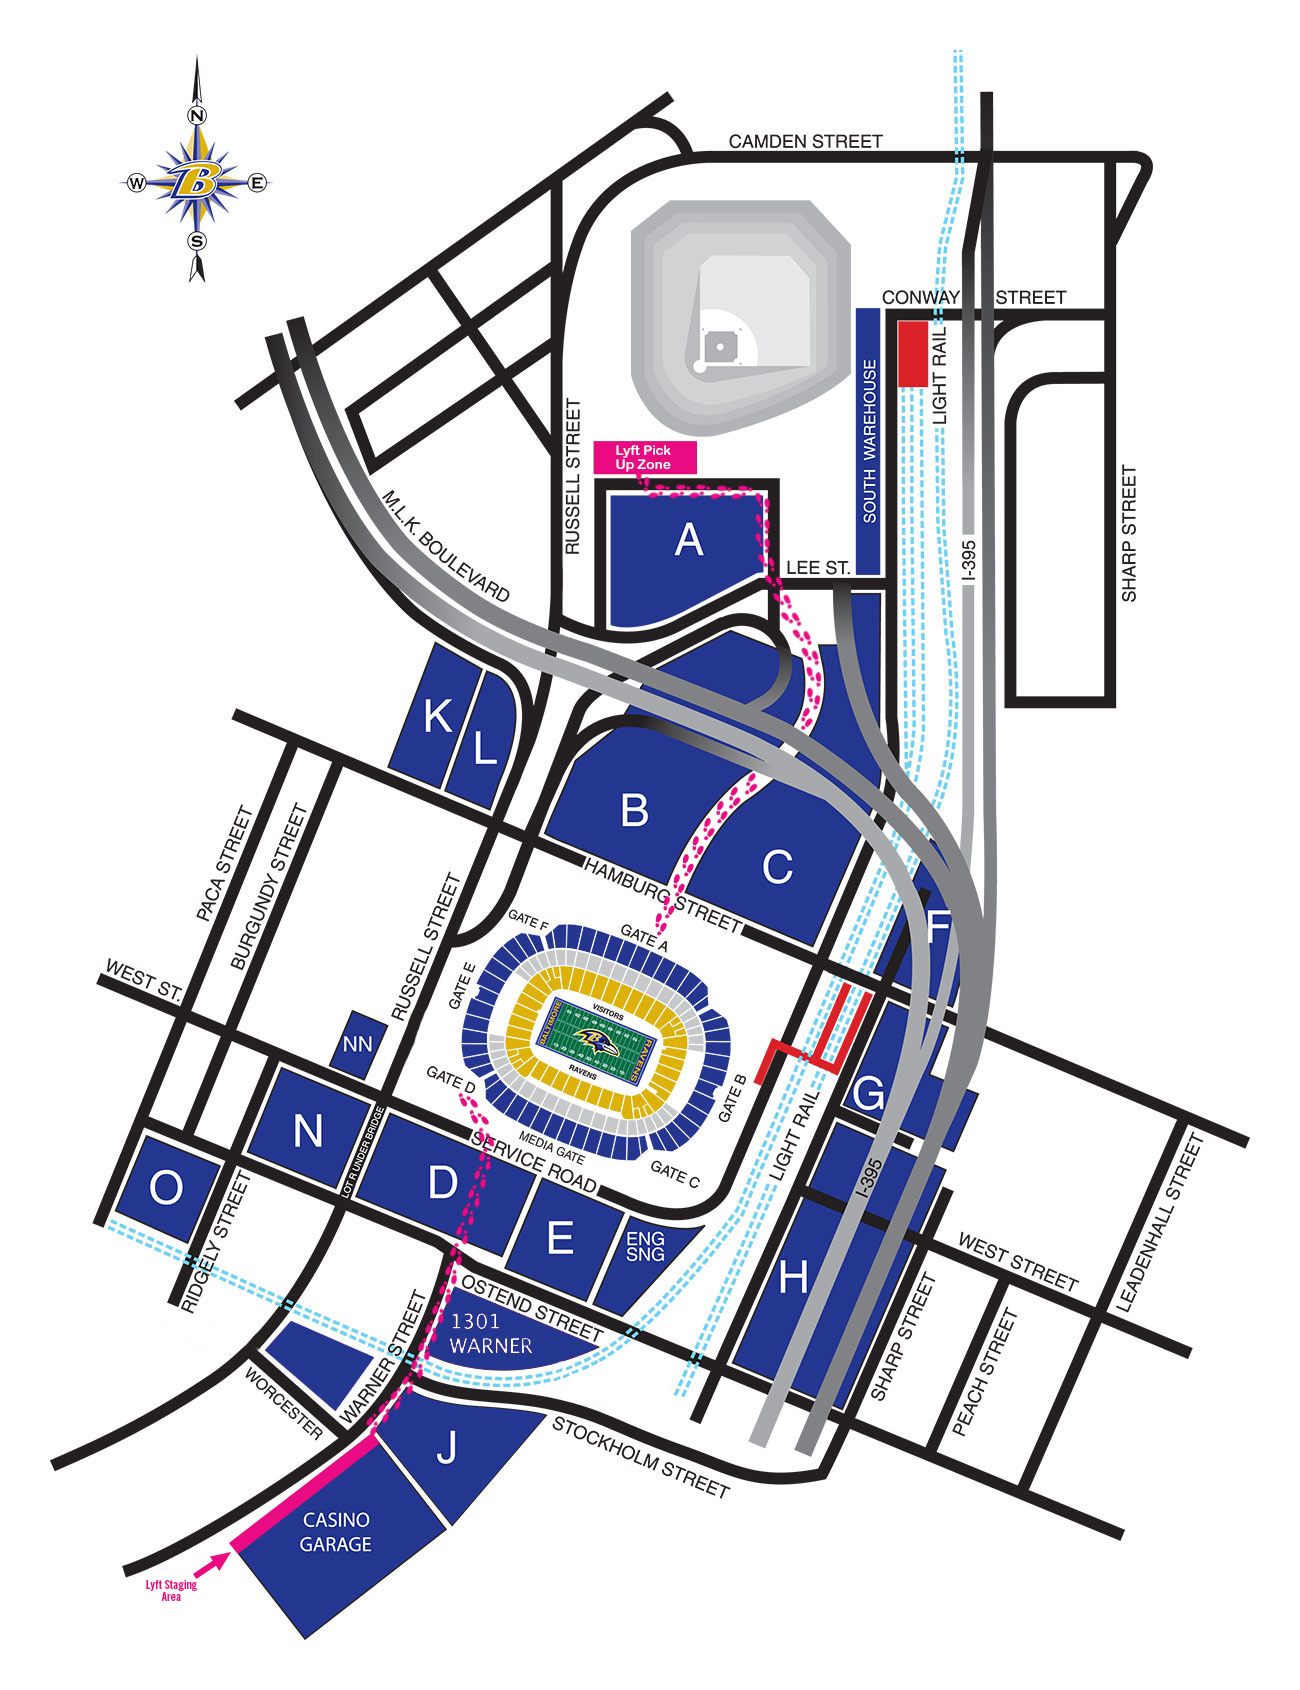 Ravens Stadium Map M&T Bank Stadium Diagrams | Baltimore Ravens – baltimoreravens.com